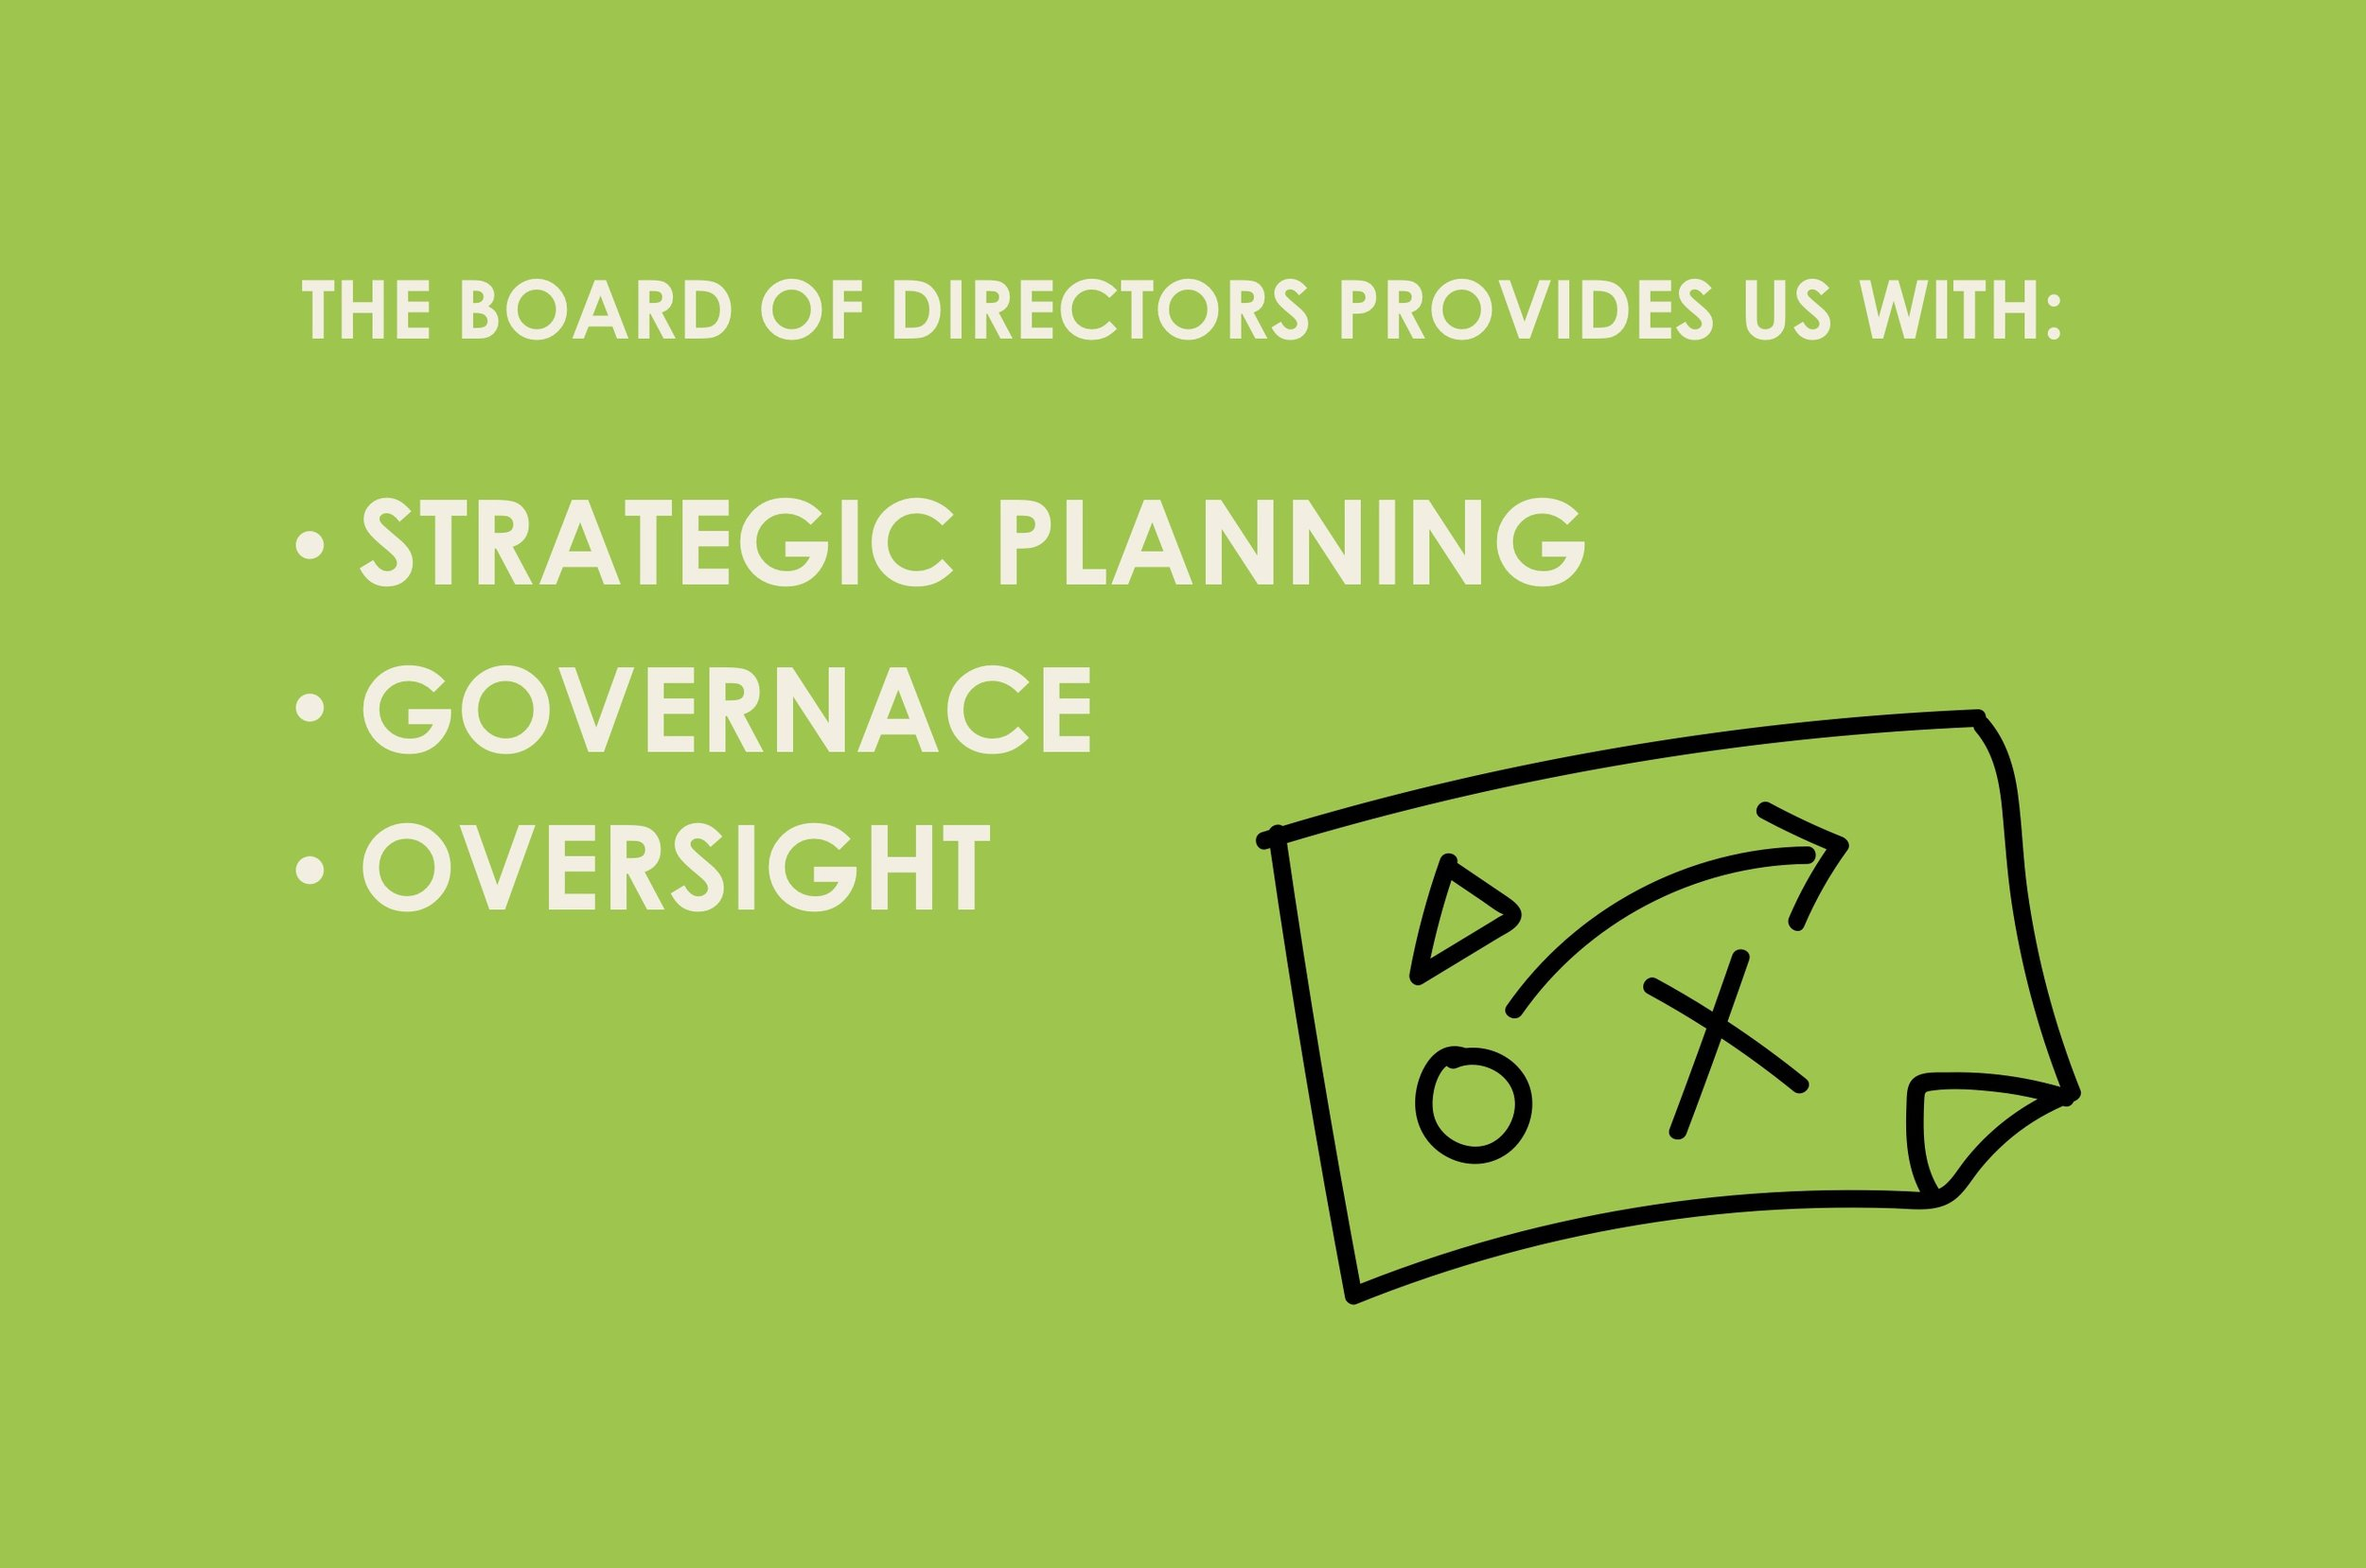 The board of directors provide us with, strategic planning, governance, oversight.